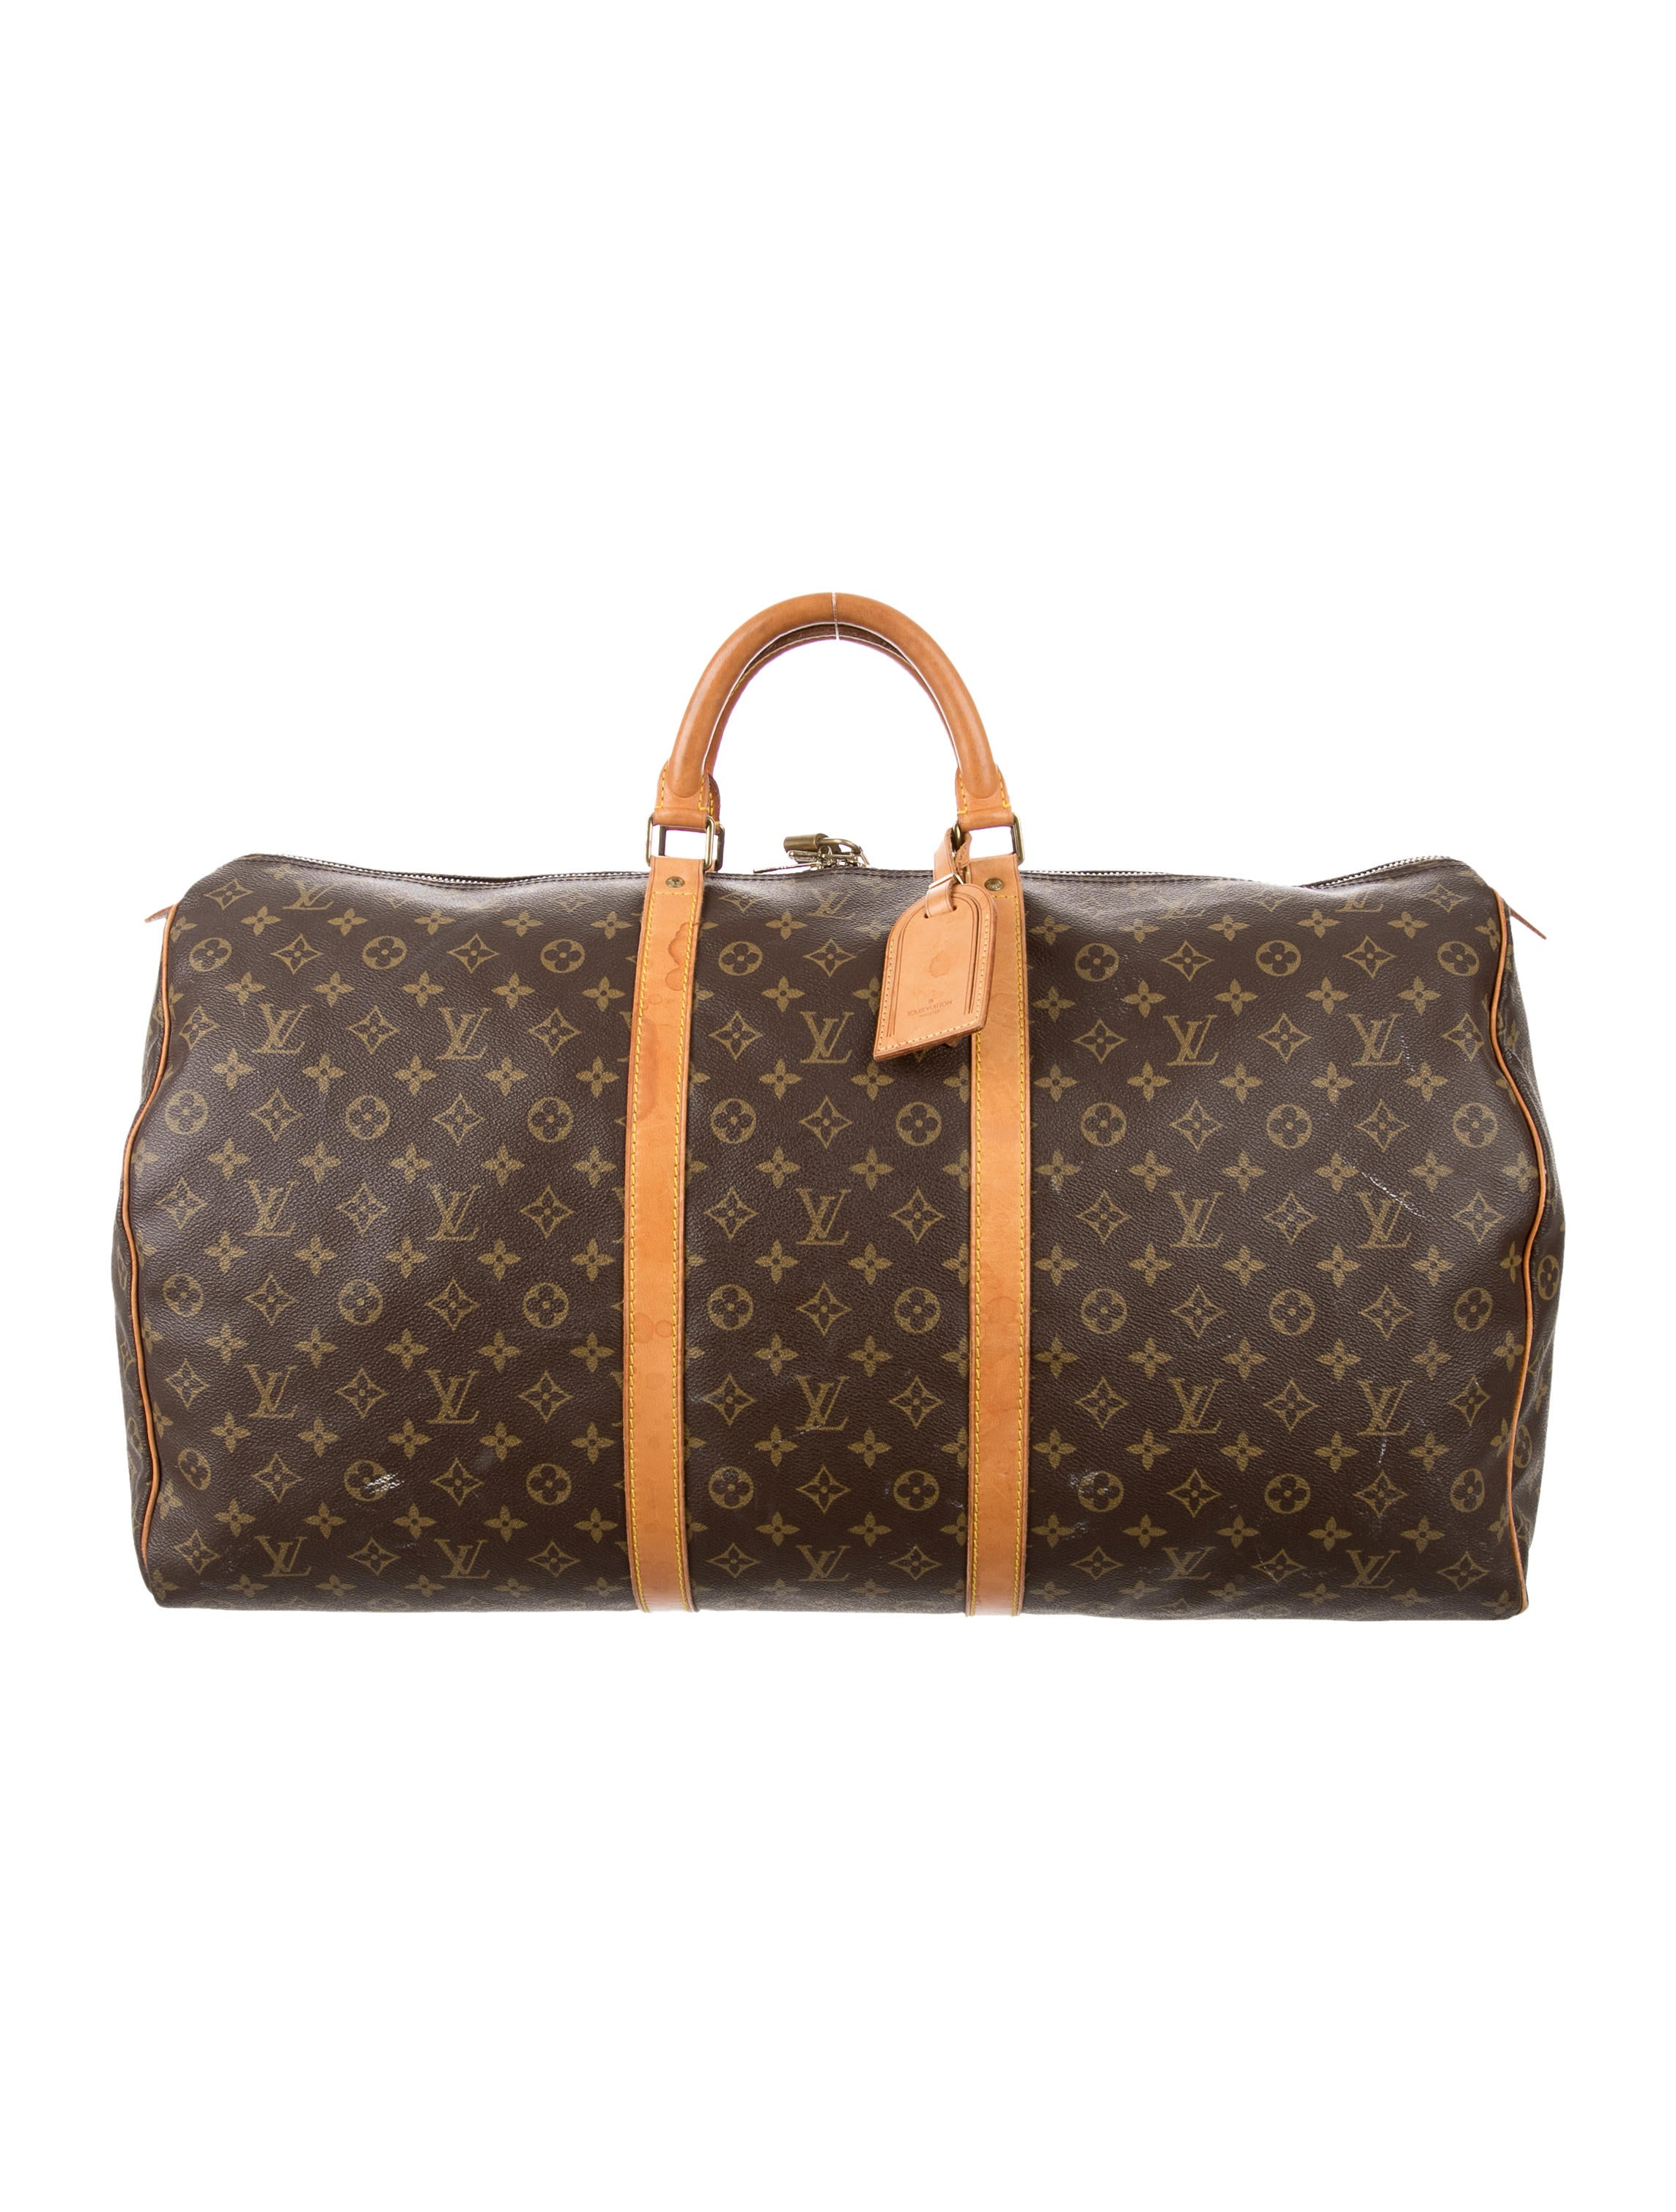 louis vuitton monogram keepall 60 luggage lou123051. Black Bedroom Furniture Sets. Home Design Ideas